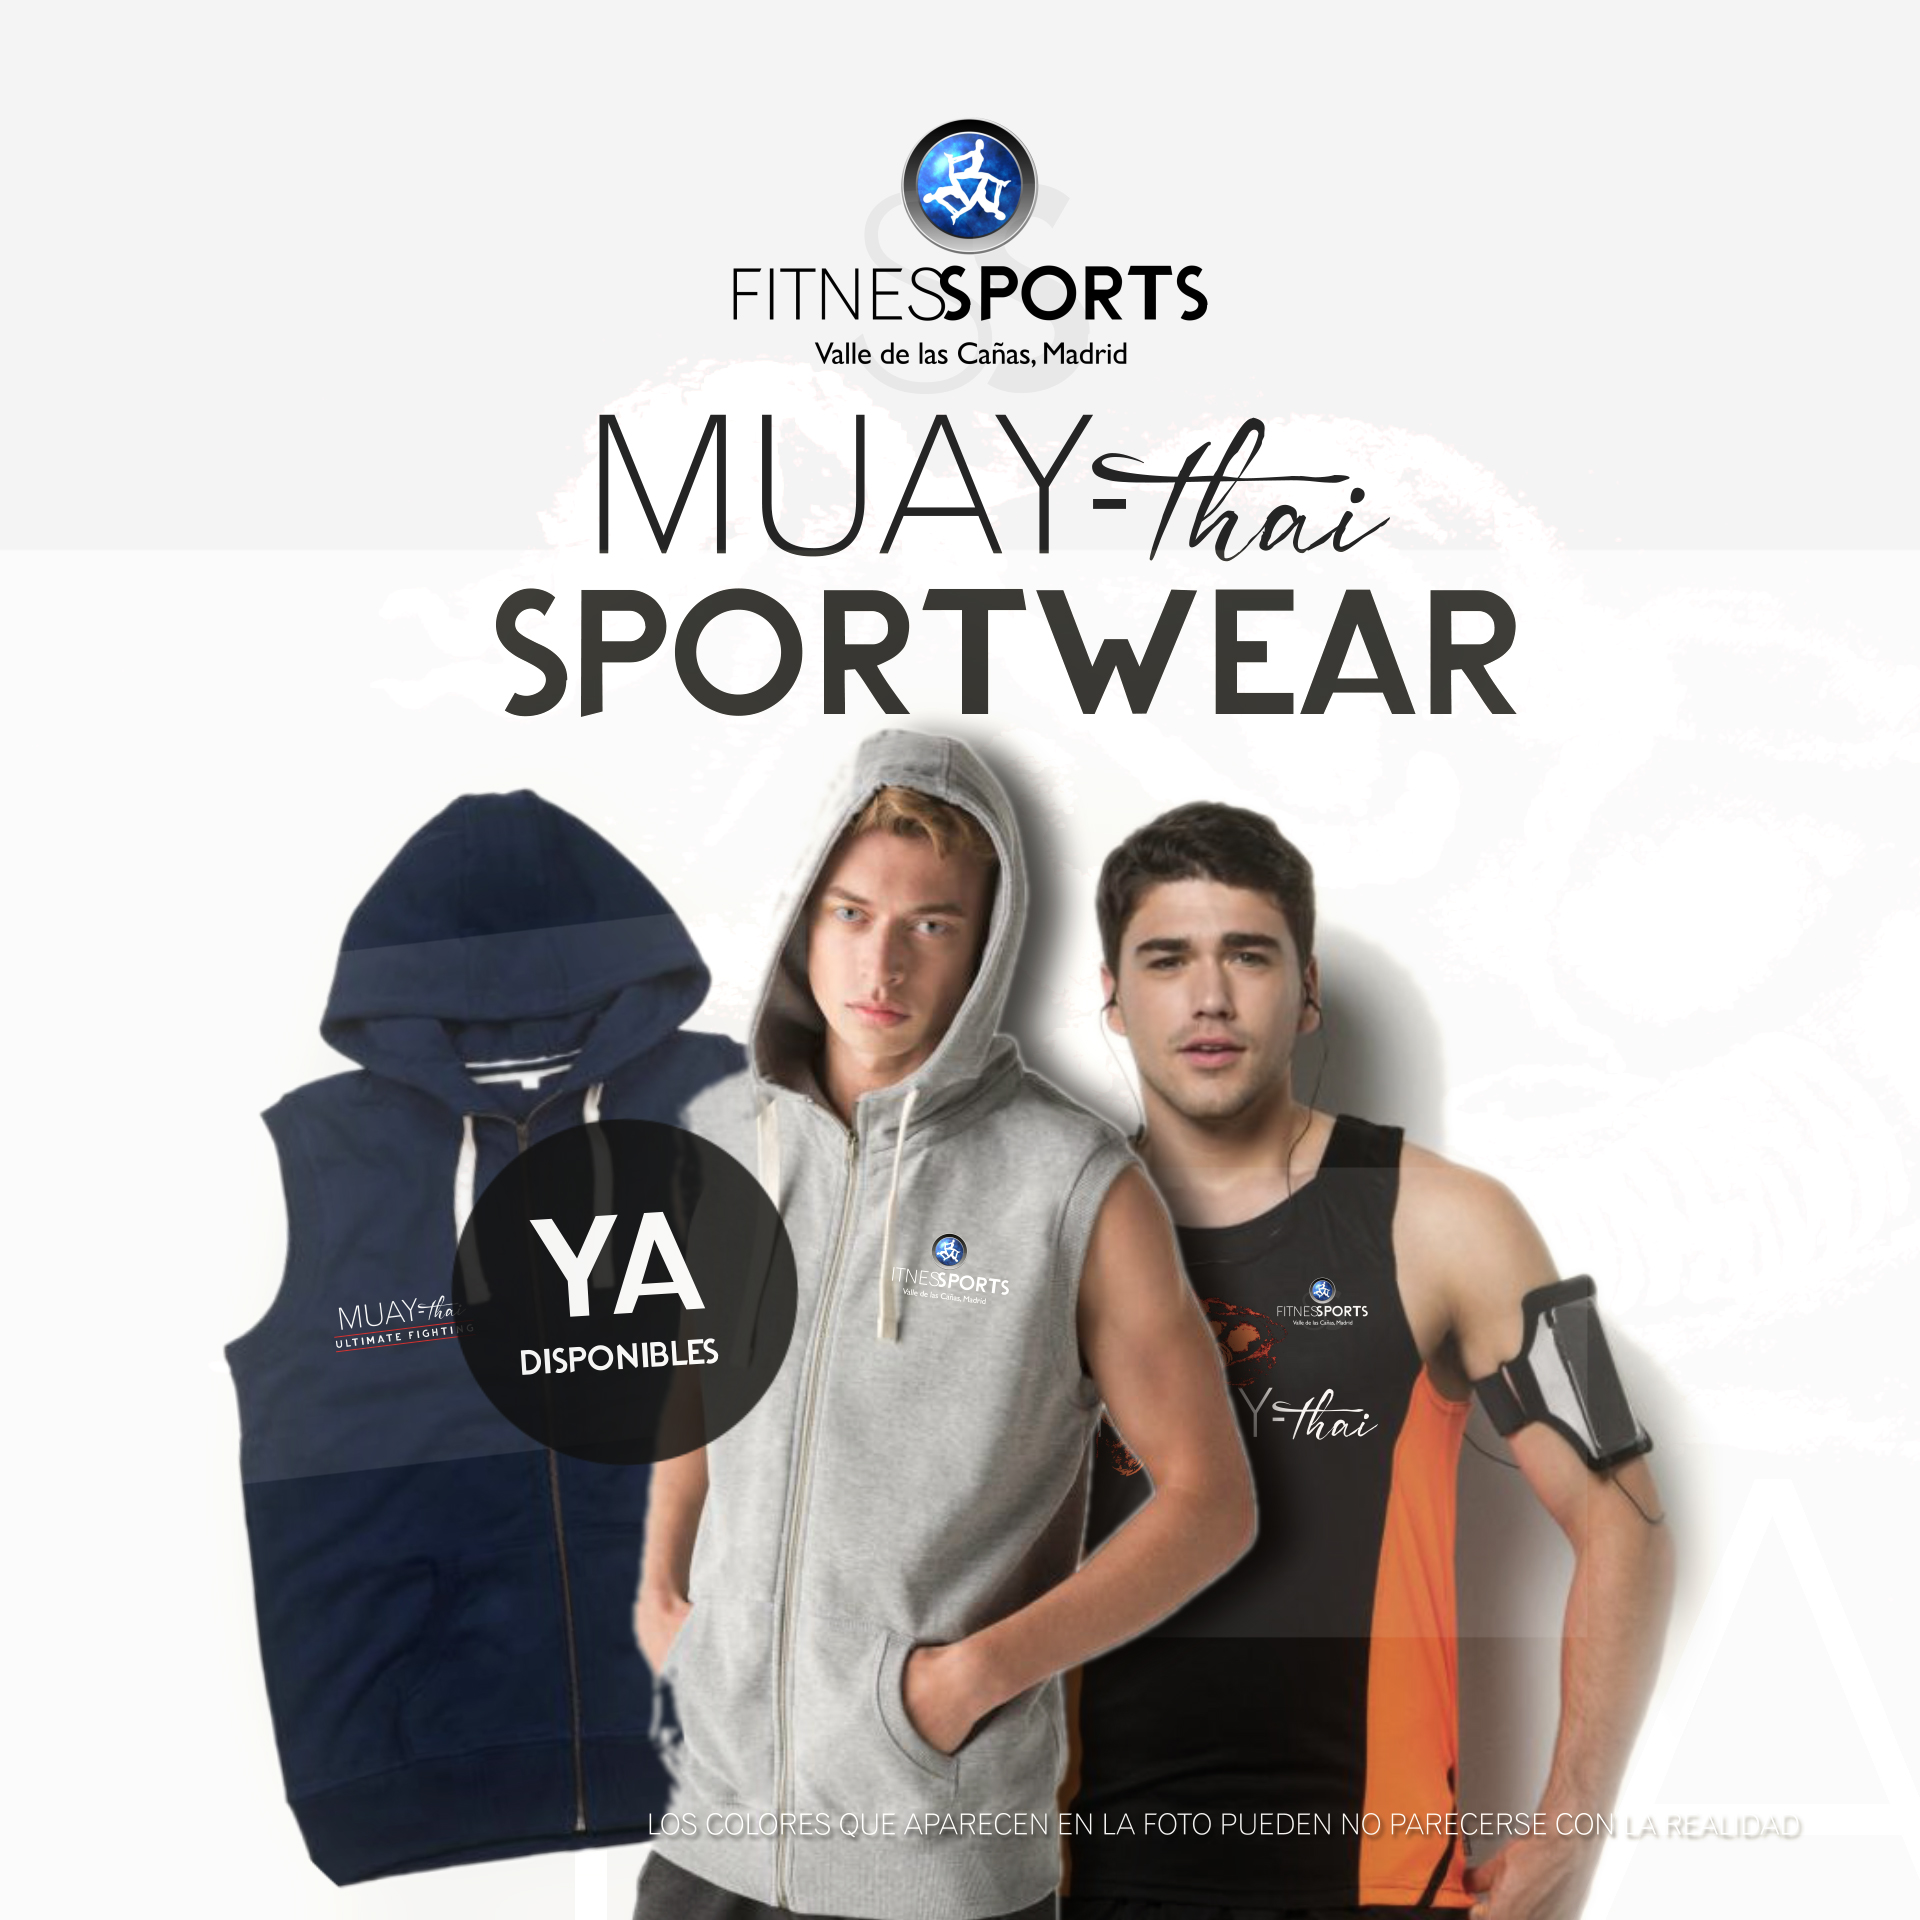 muay-thai-sportswear-camisetas-fitness-sports-valle-las-canas-box